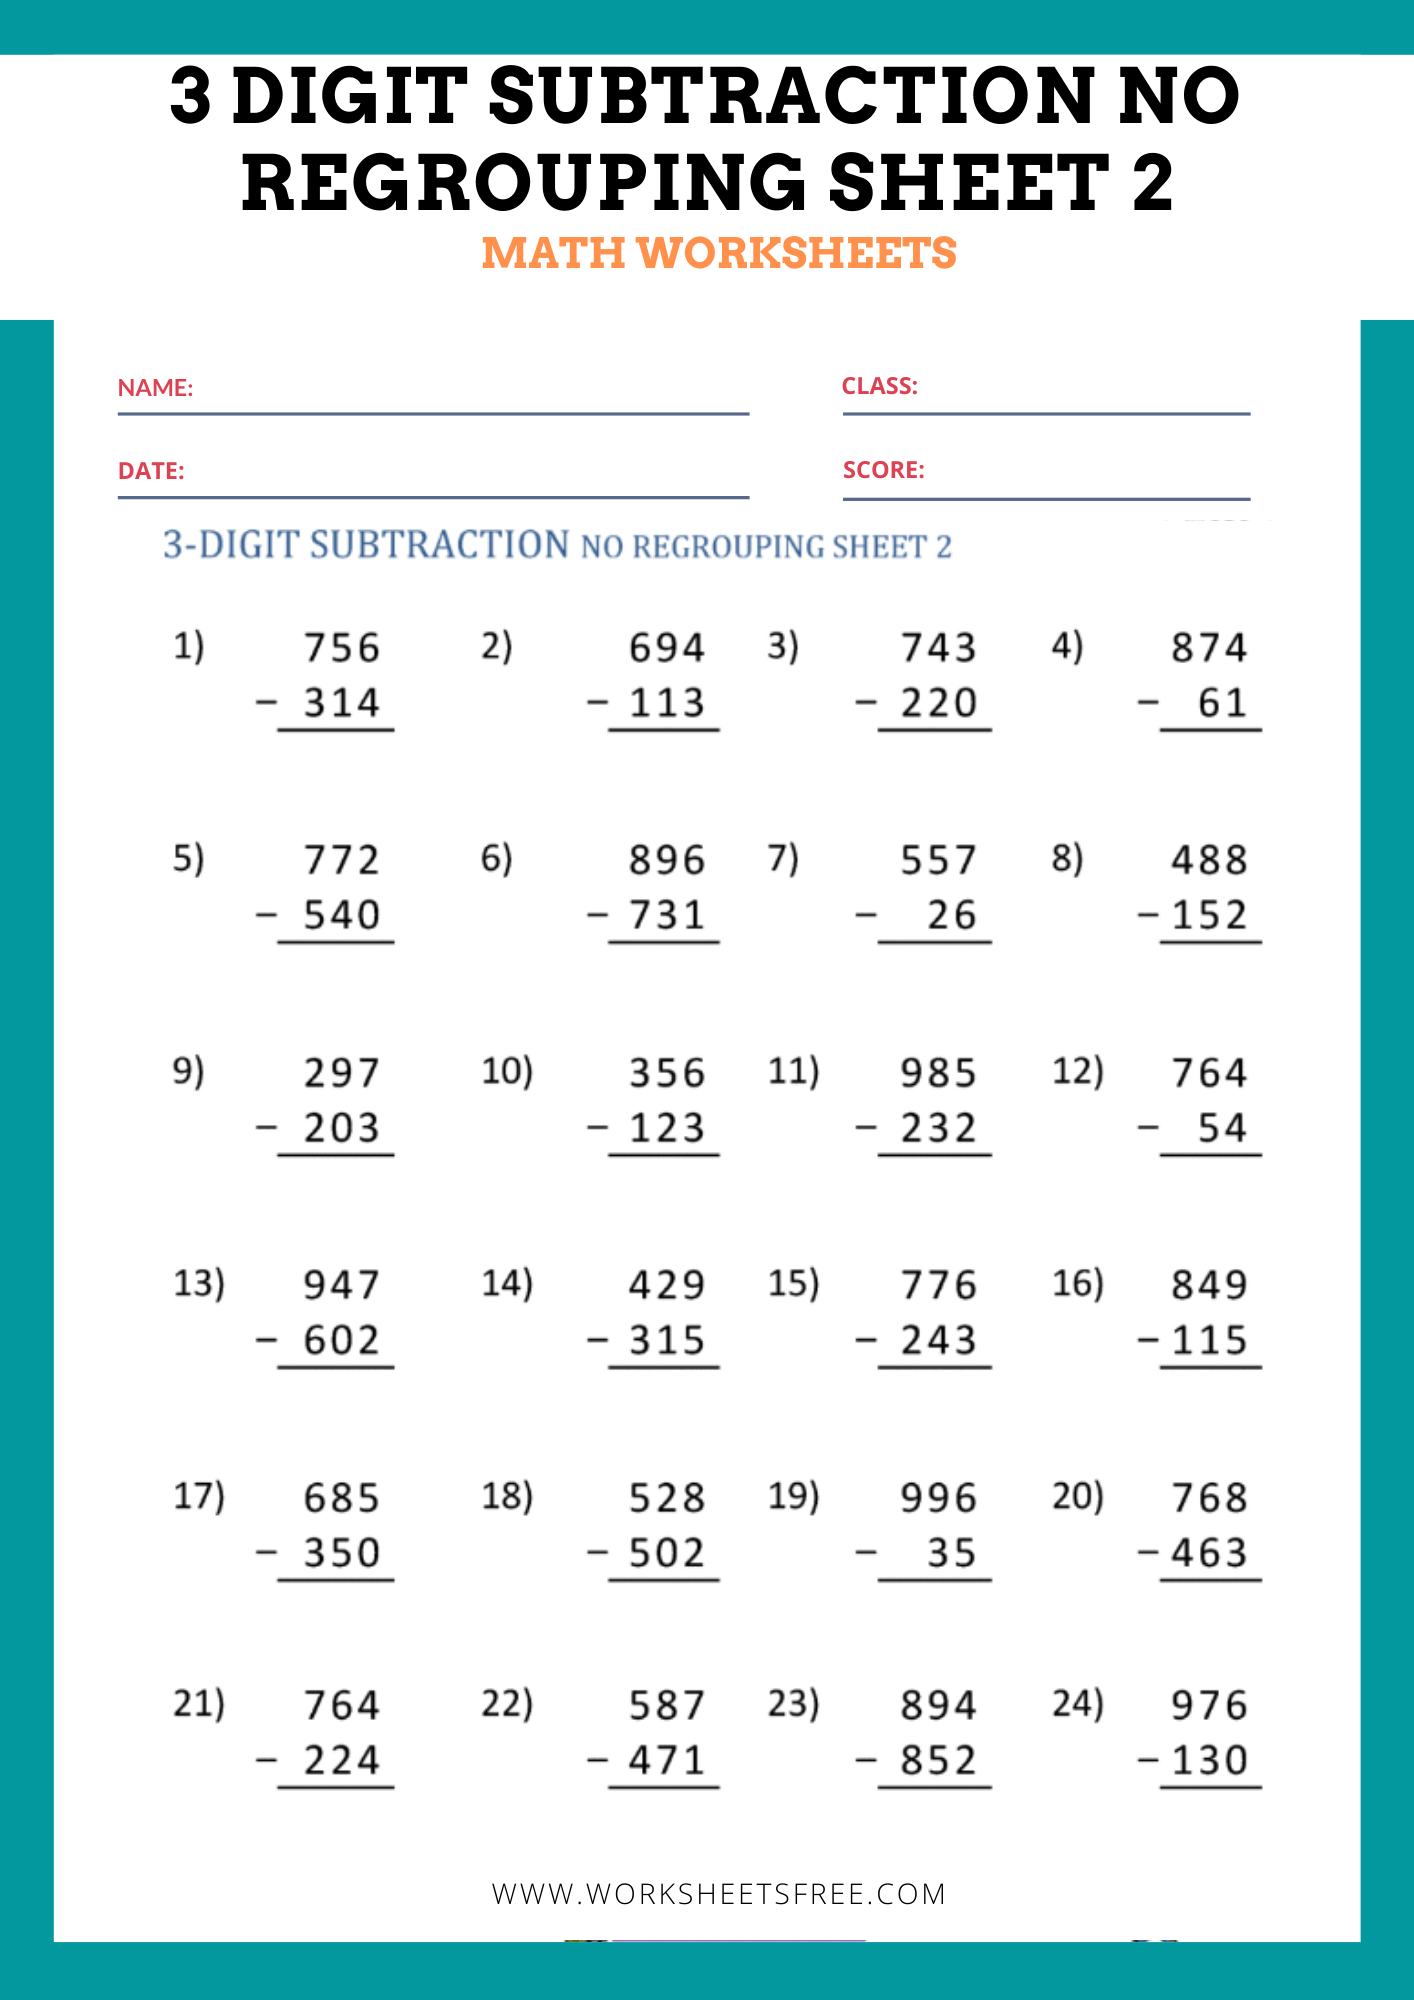 3 Digit Subtraction No Regrouping Sheet 2